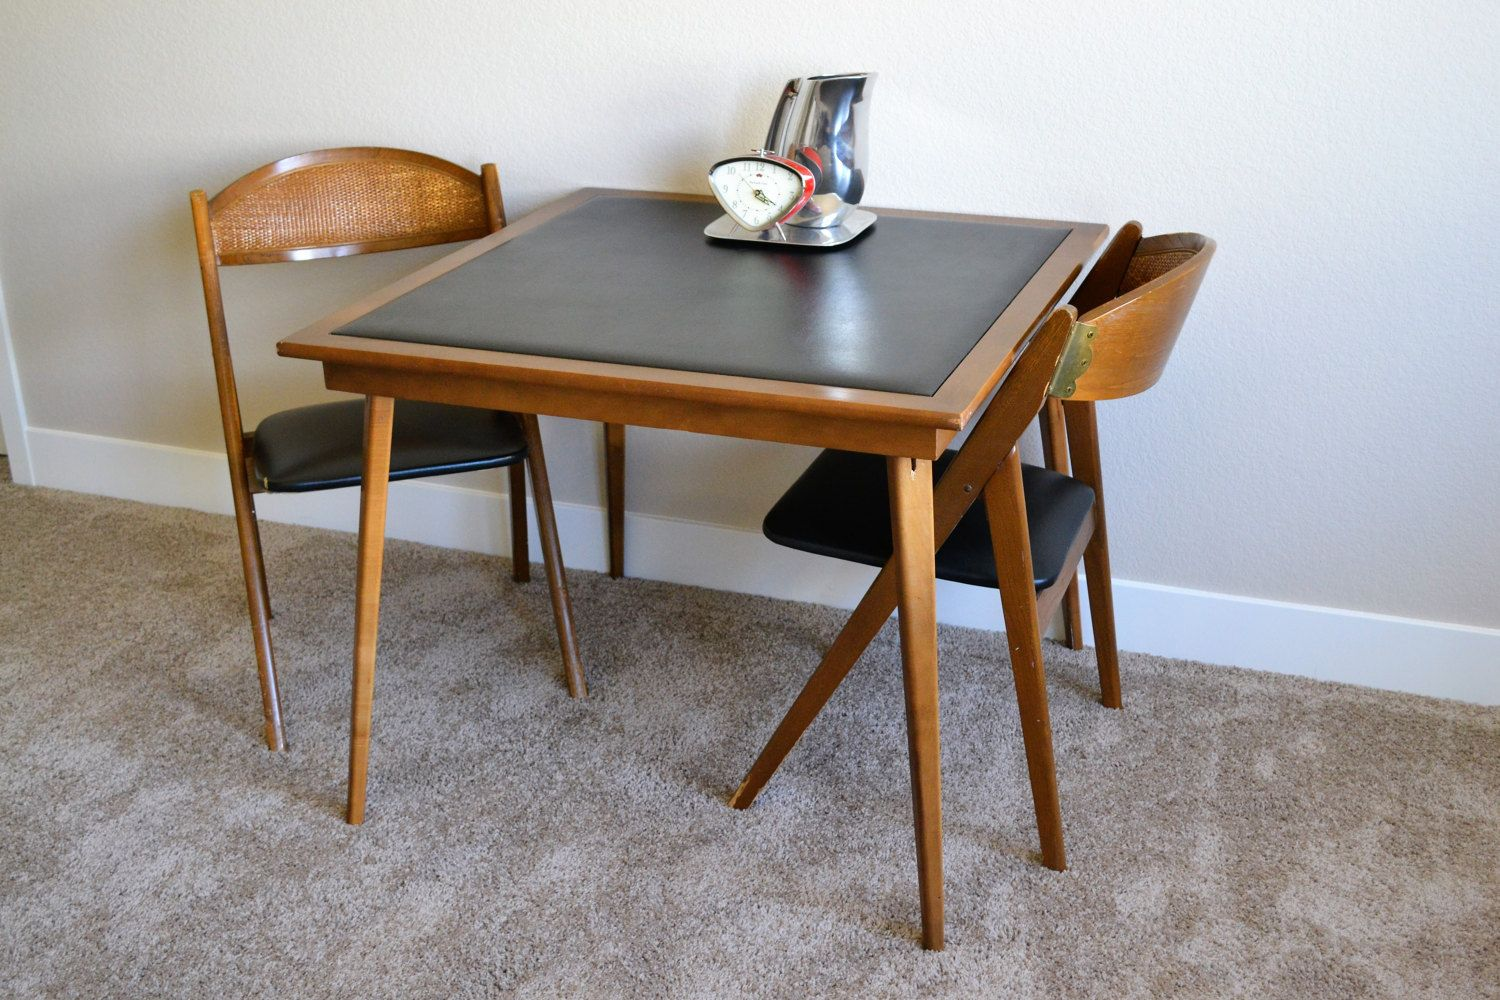 Table With Two Chairs Vintage Stakmore Folding Table Two Chairs Danish Furniture Table